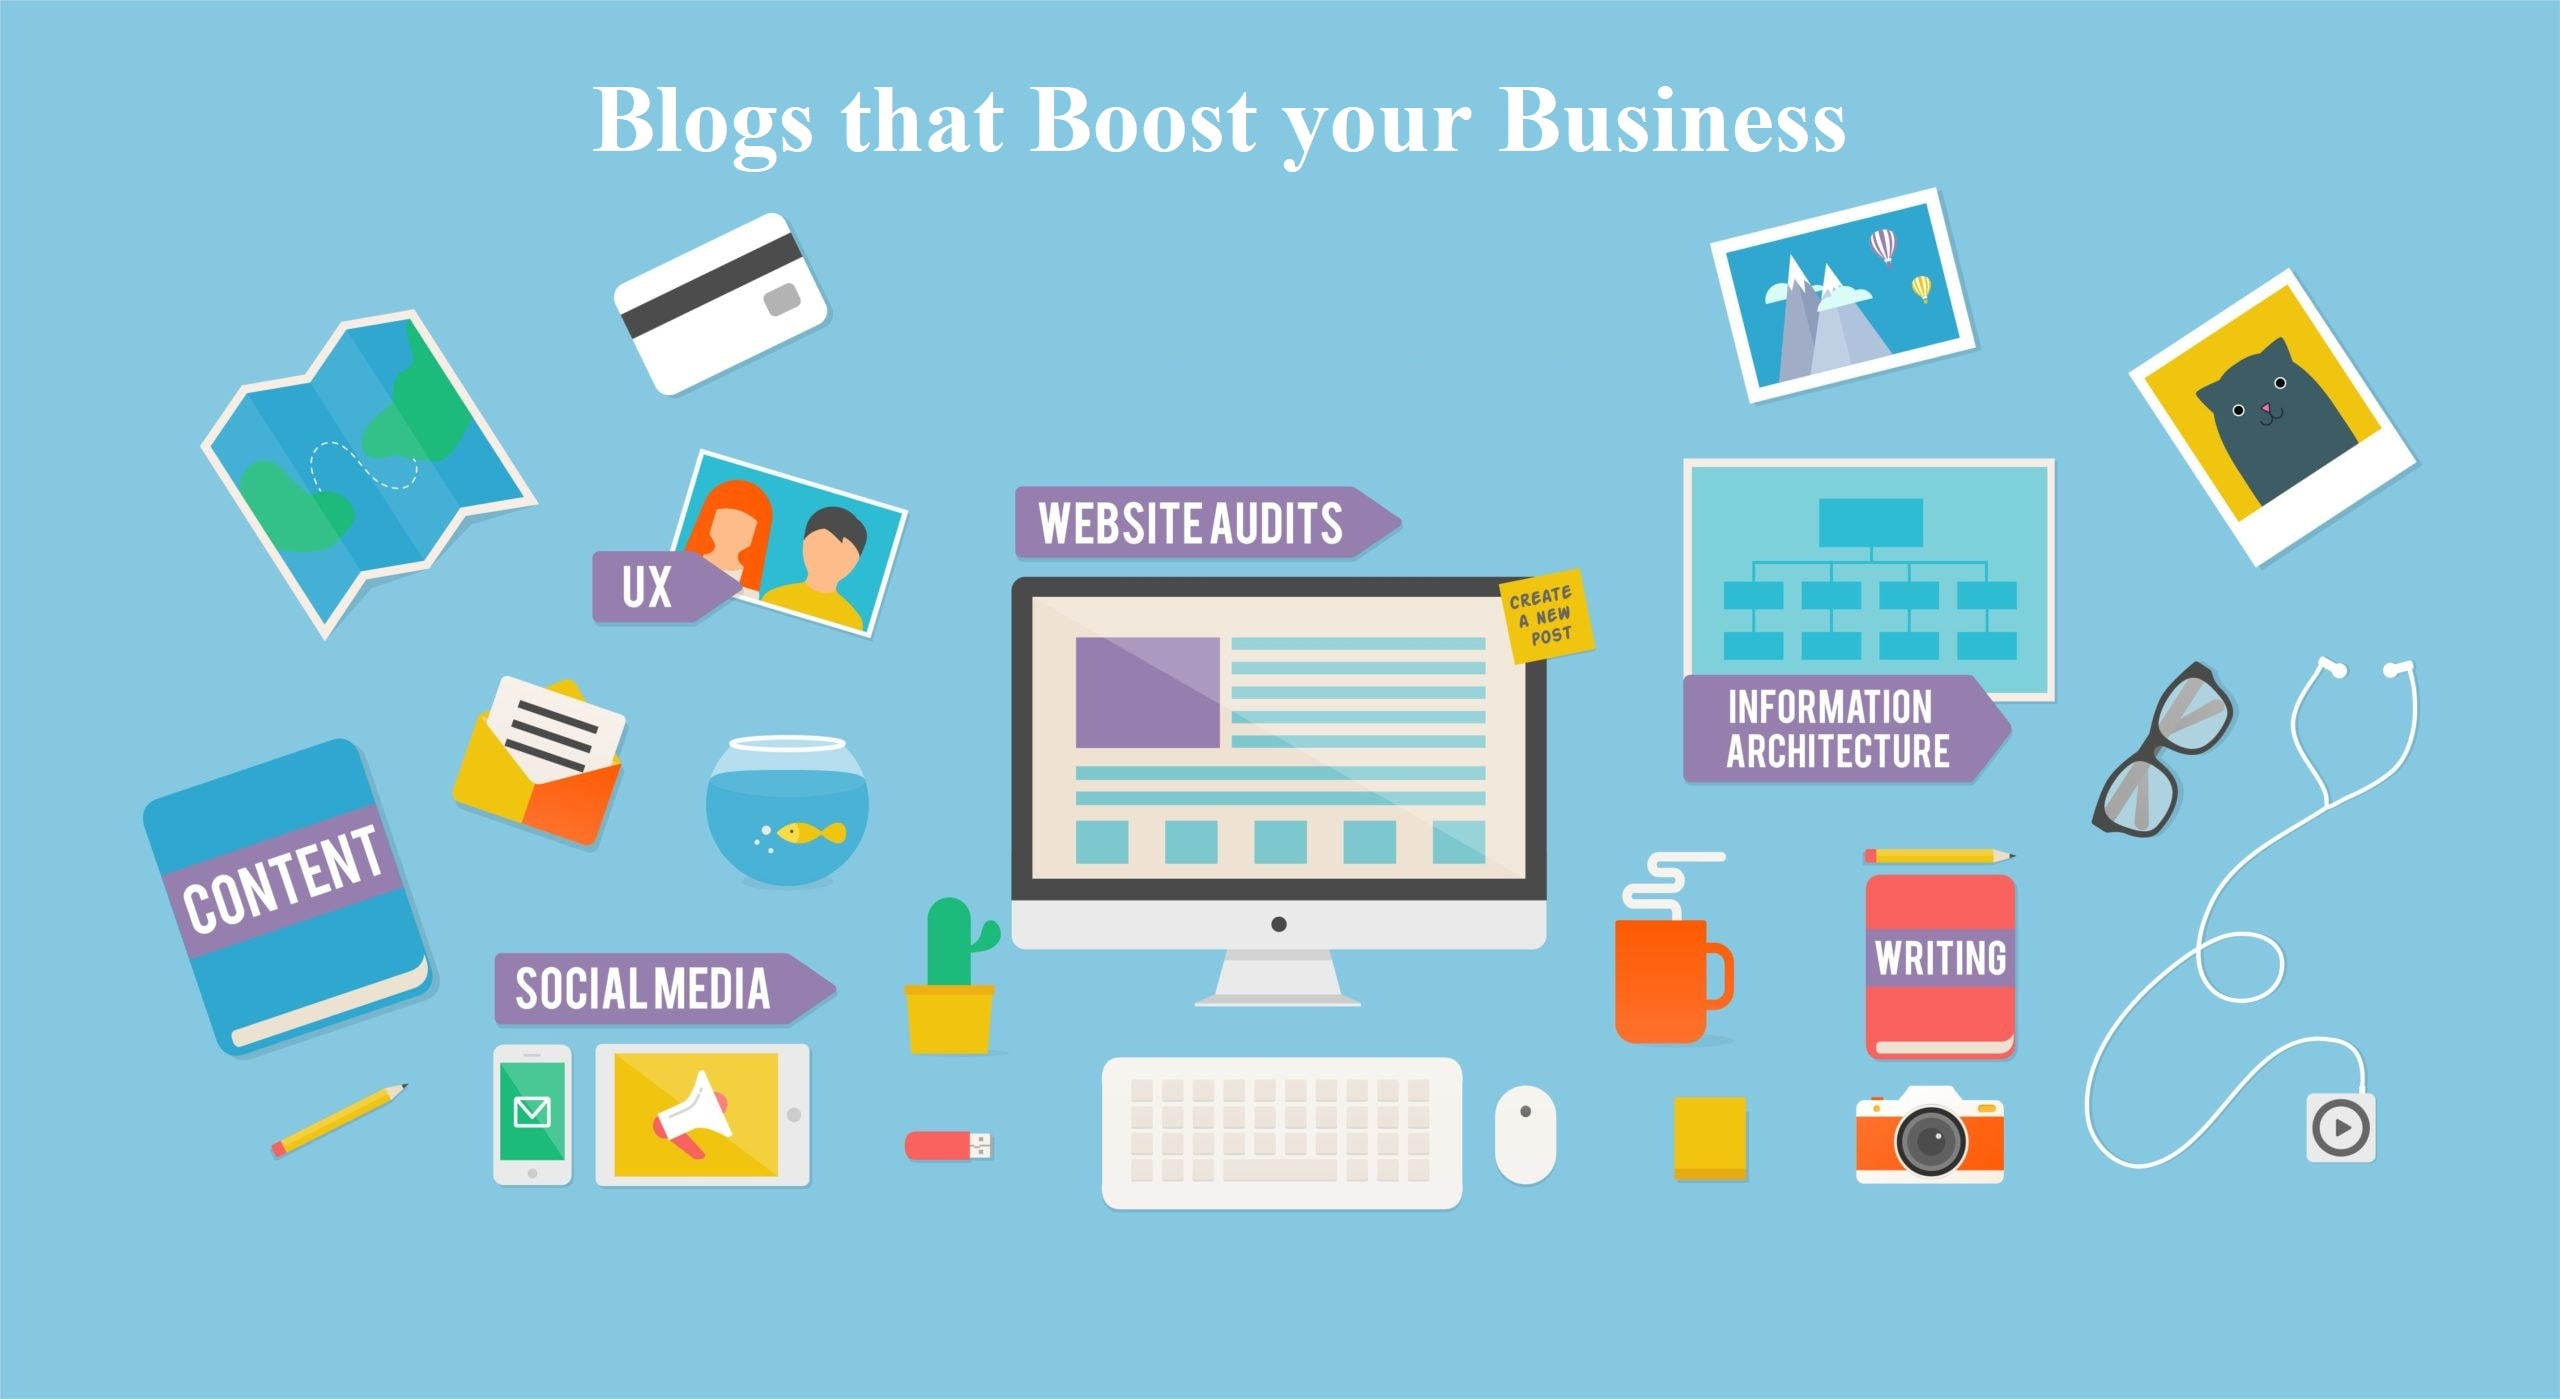 Blogs that Boost your Business